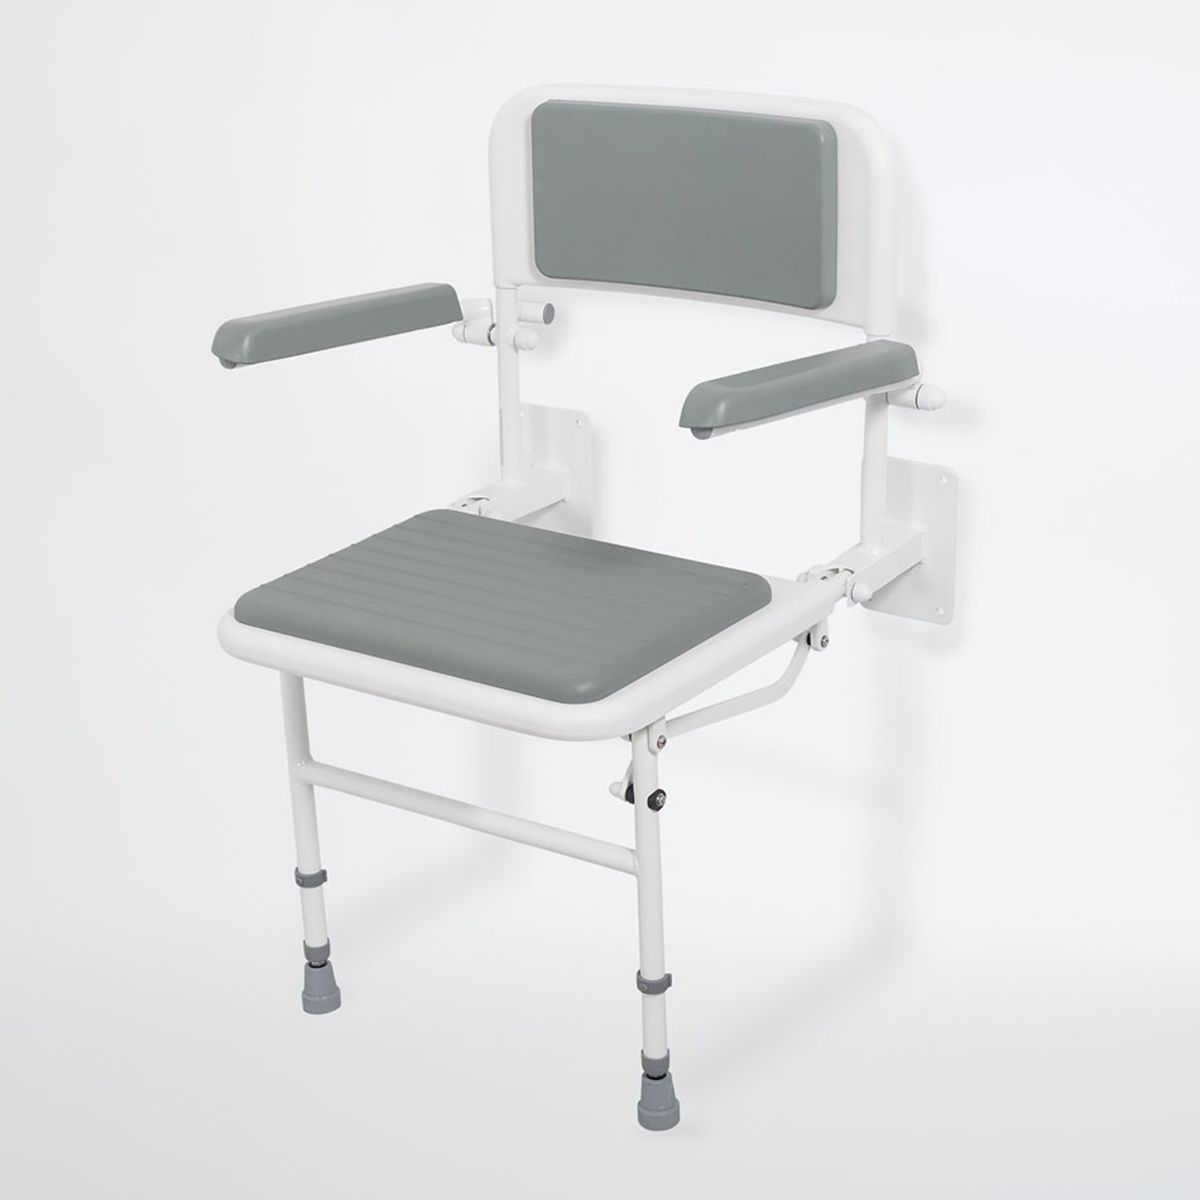 Nymas Wall Mounted Grey Padded Shower Seat with Arms & Back Support